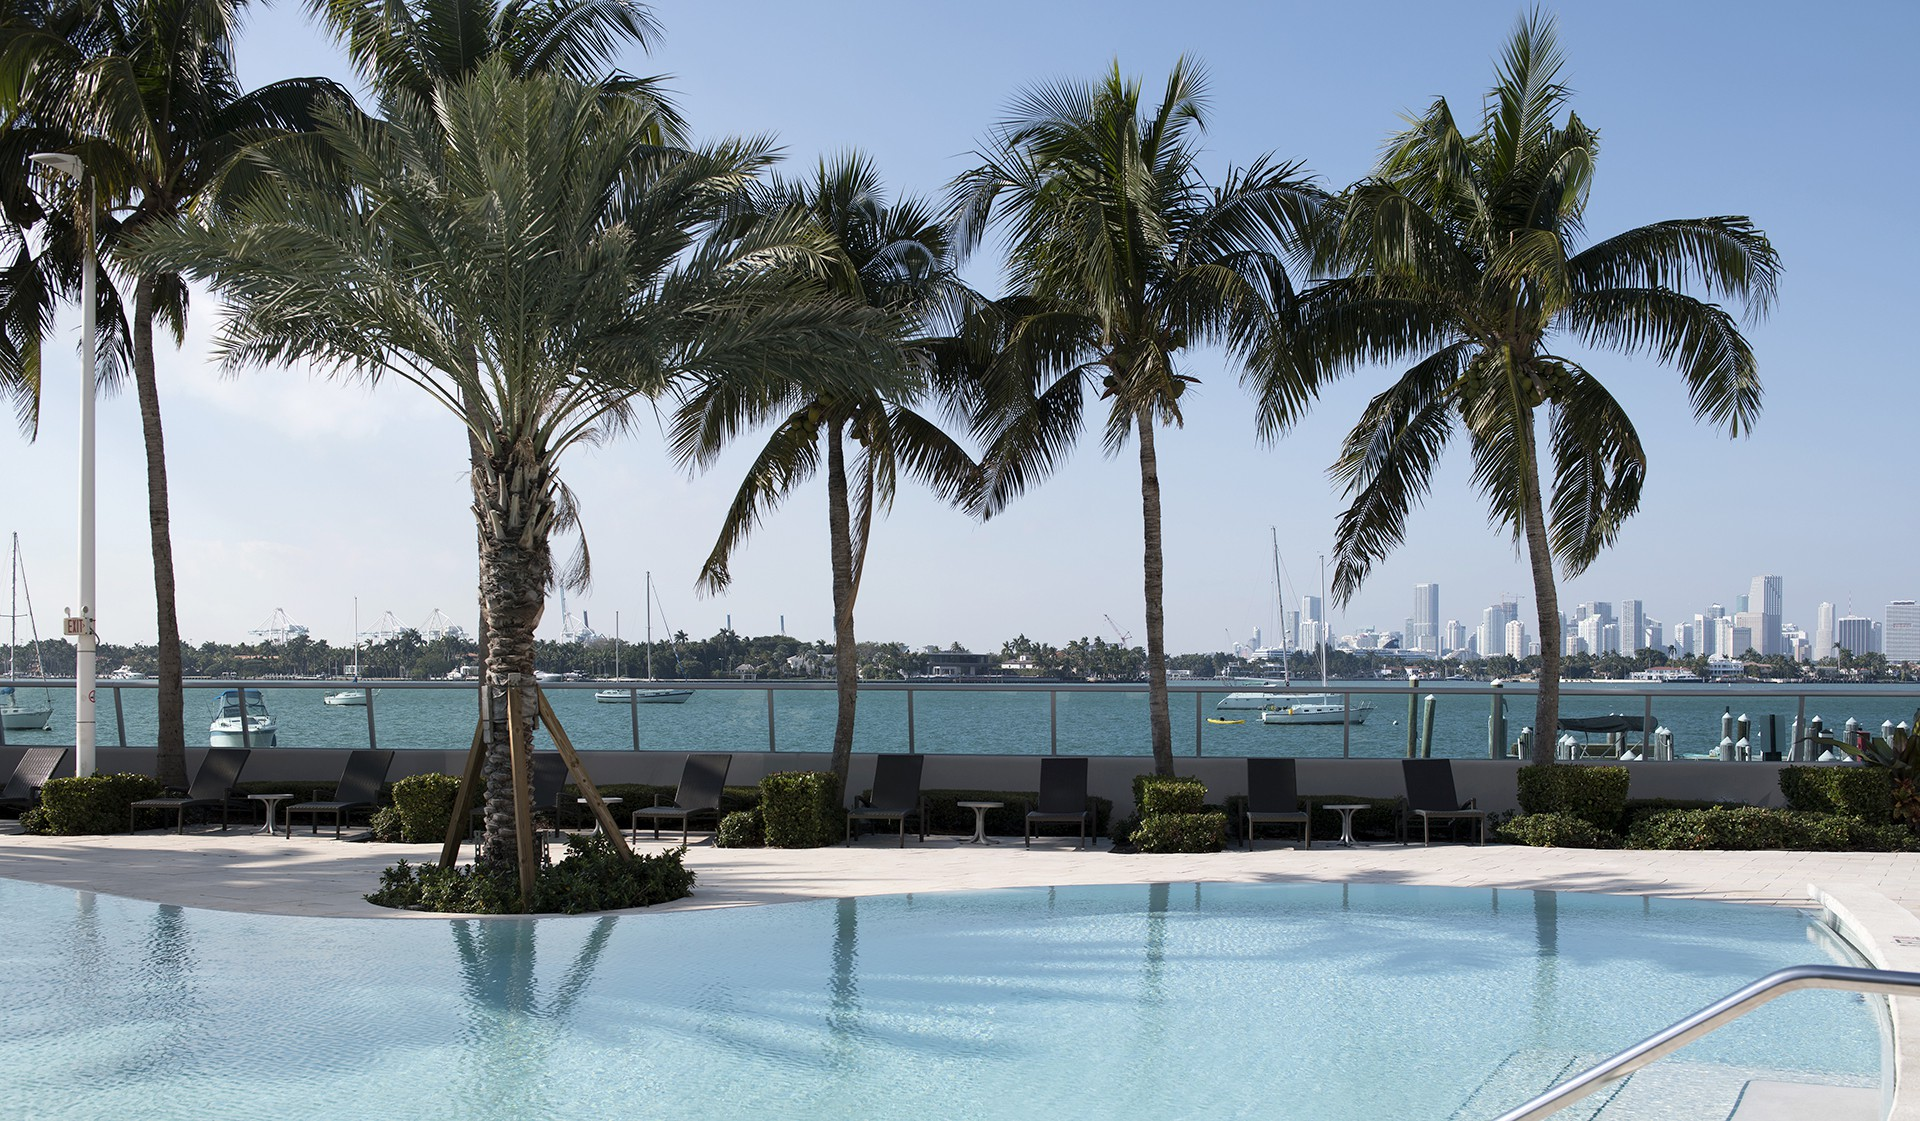 Flamingo Point South for rent